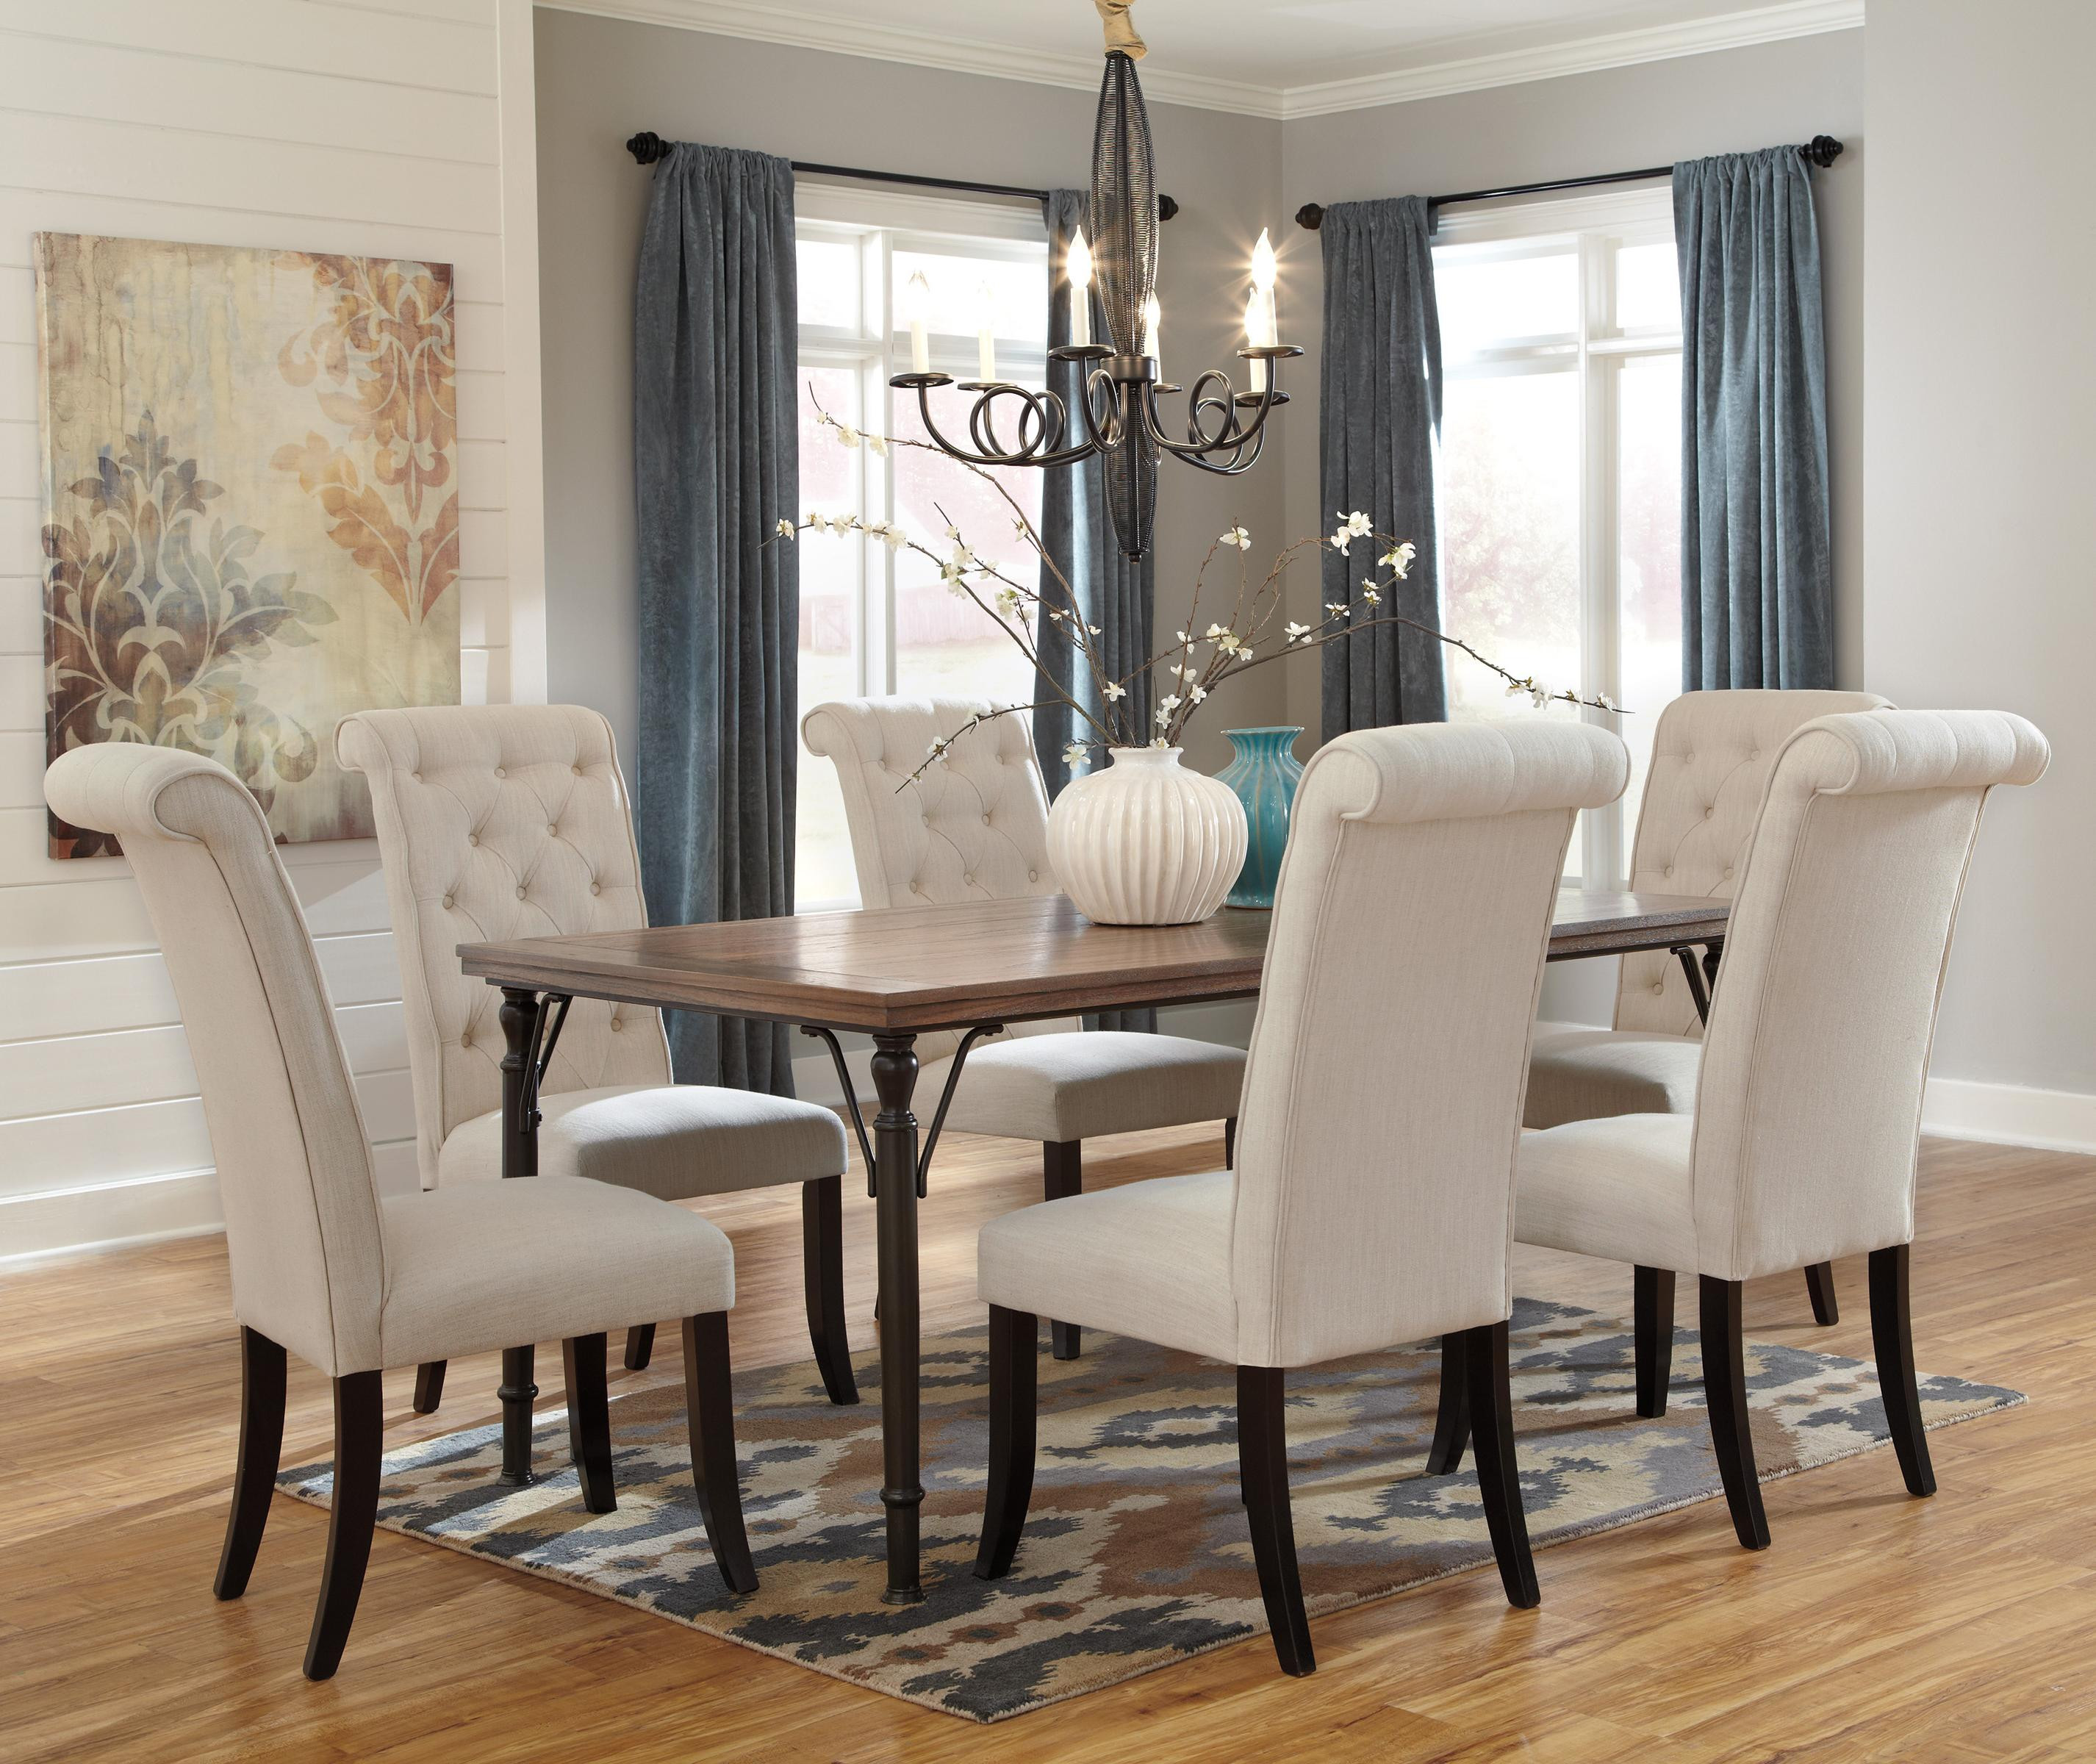 Best ideas about Ashley Furniture Dining Sets . Save or Pin Signature Design by Ashley Tripton 7 Piece Rectangular Now.